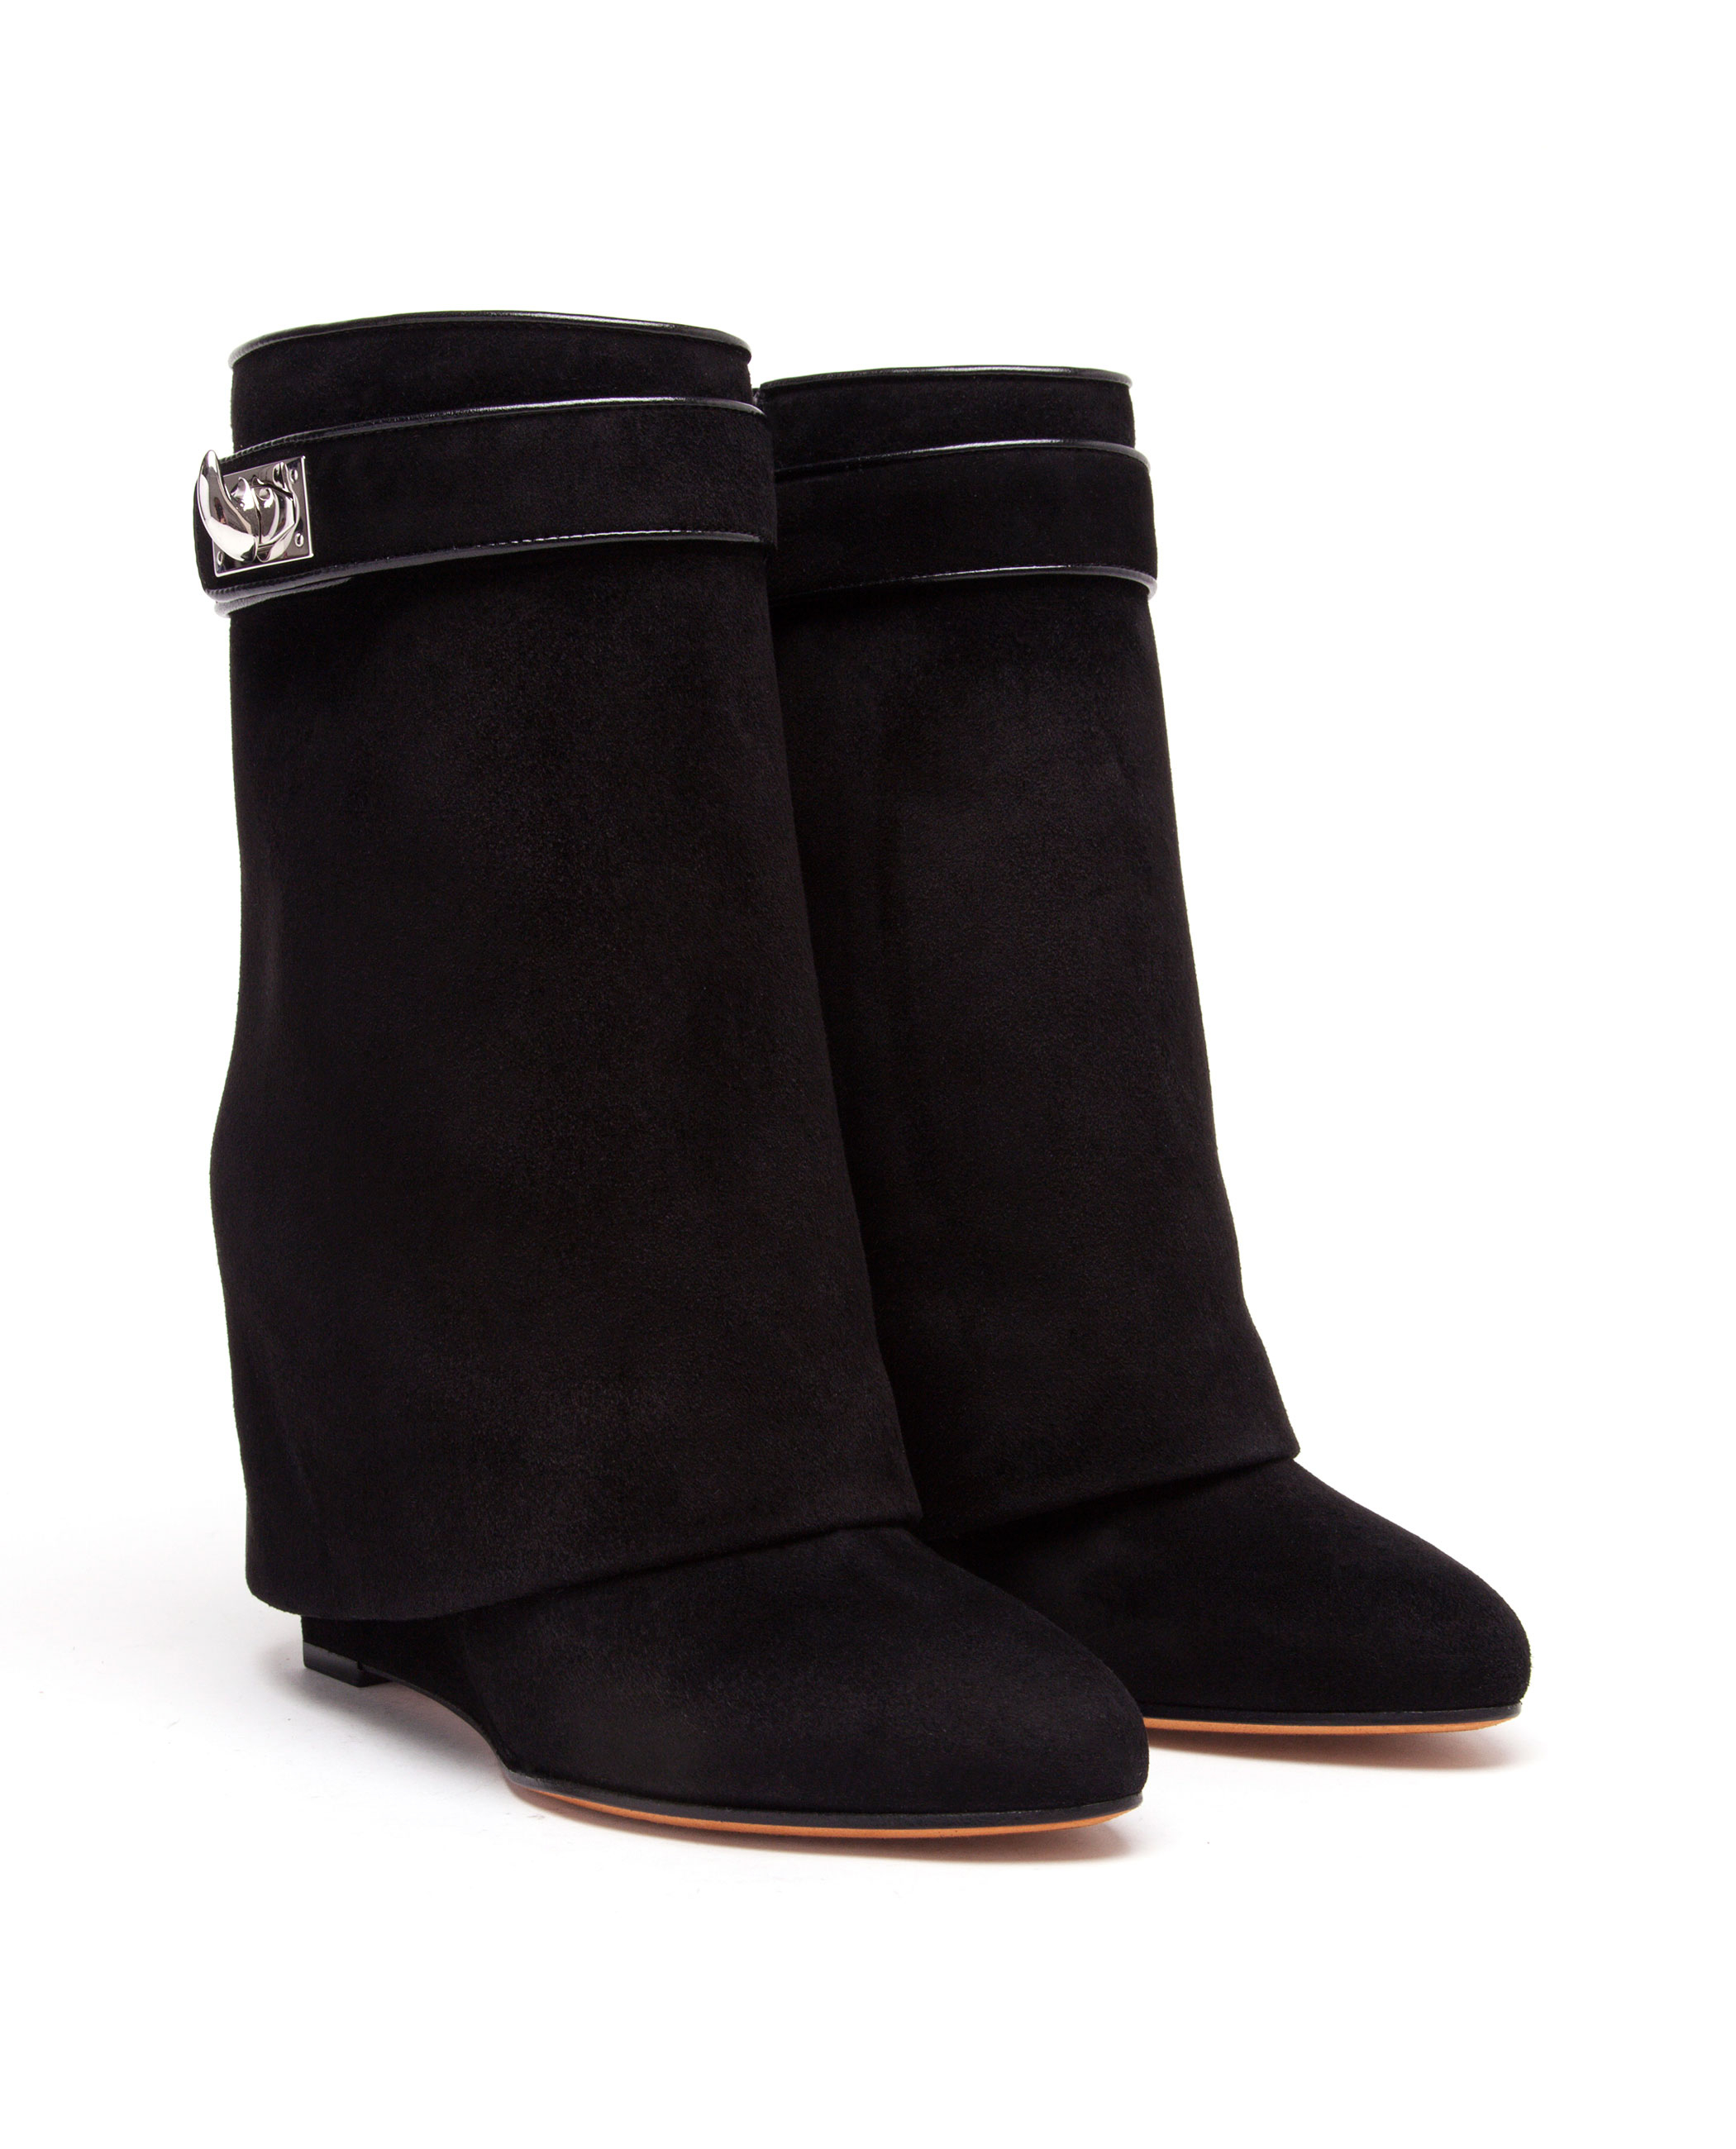 Lyst - Givenchy Shark Lock Suede Wedge Ankle Boots in Black d0b93d515